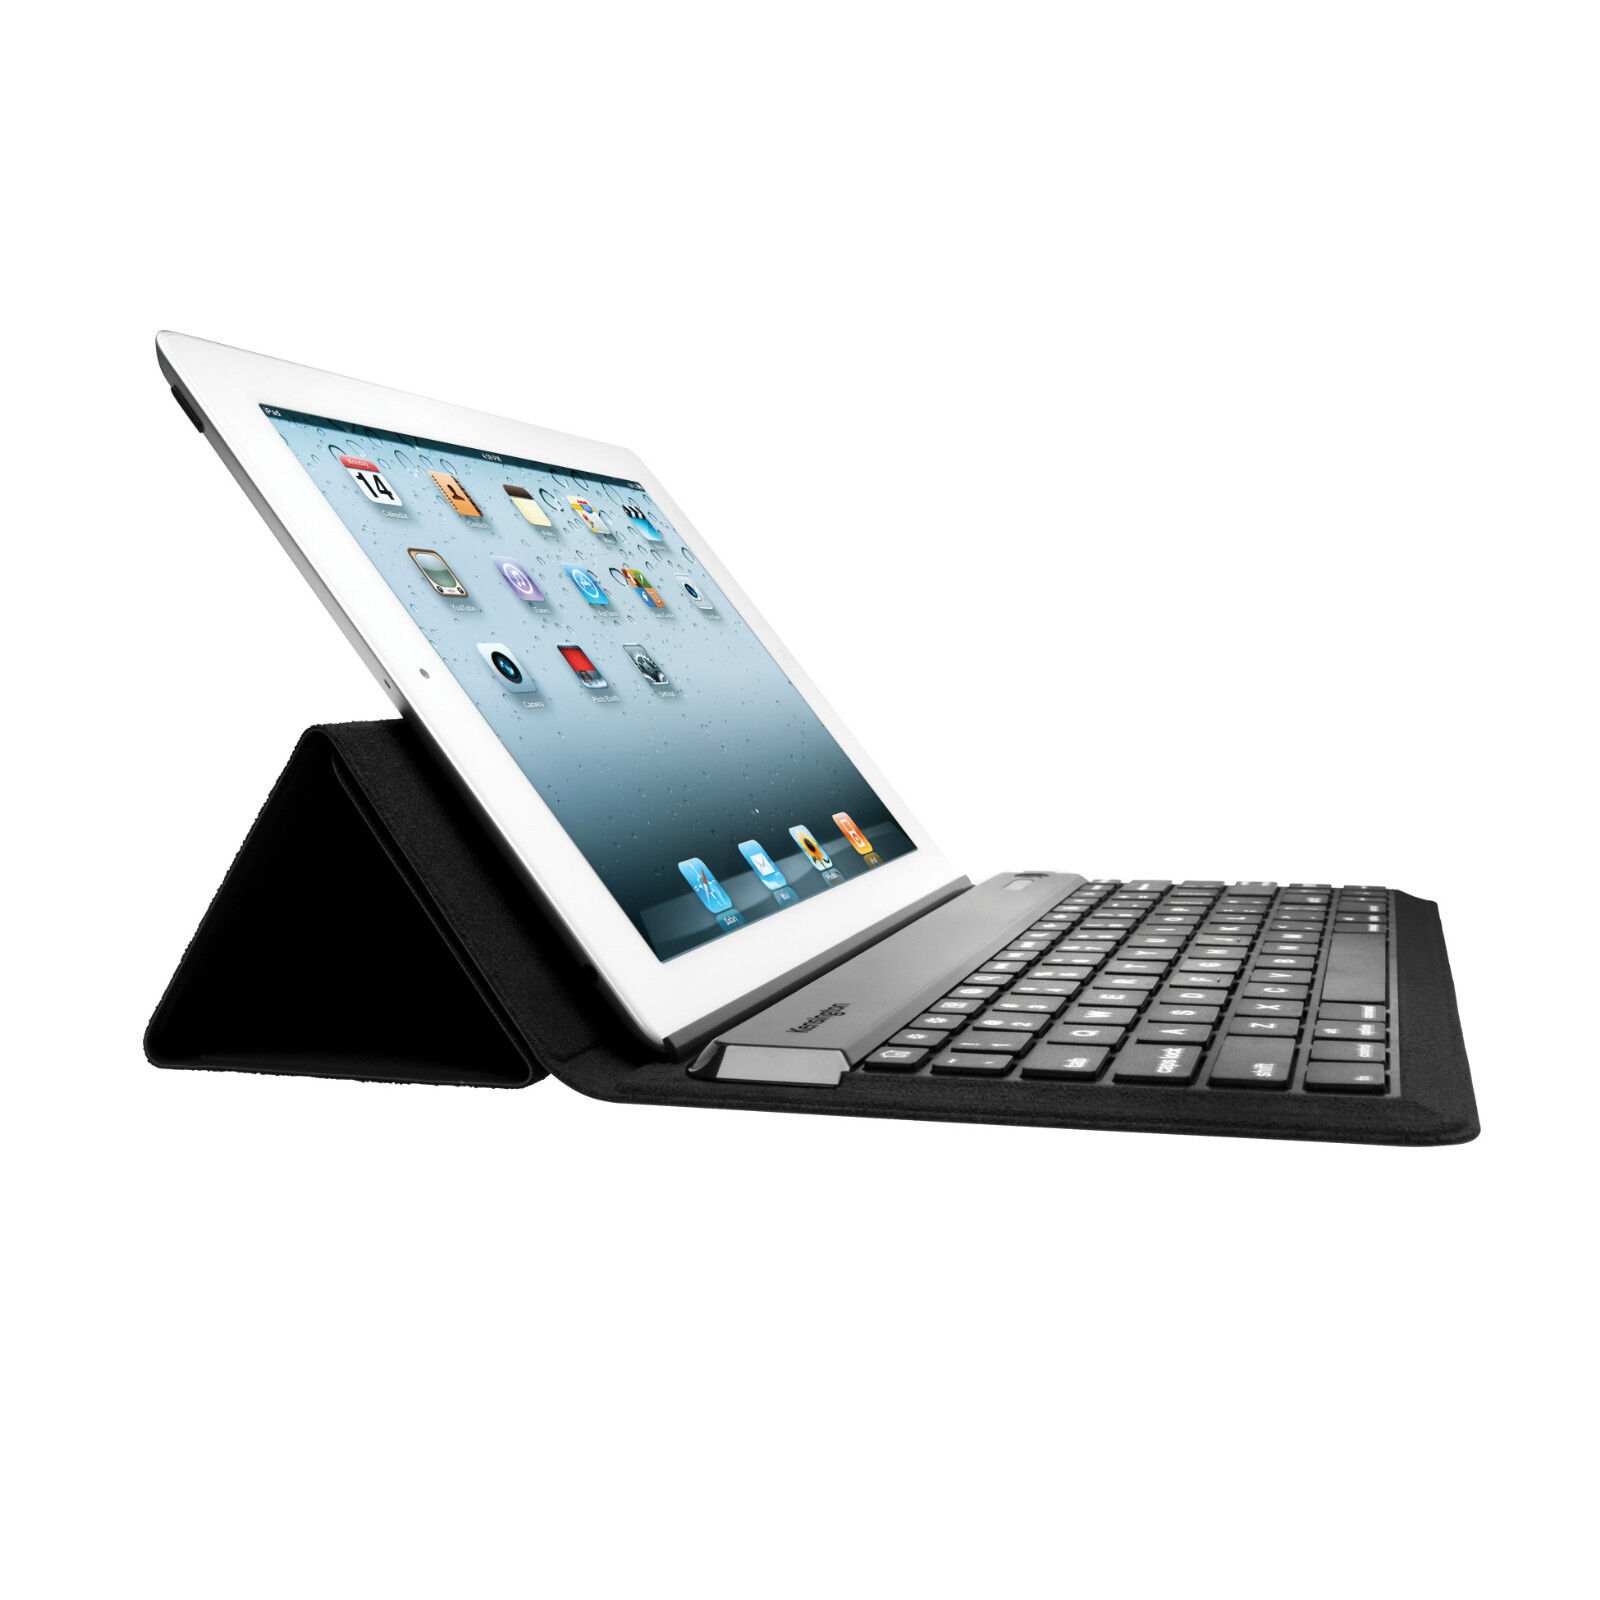 apple ipad air 2 wireless bluetooth french azerty keyboard clavier stand cover ebay. Black Bedroom Furniture Sets. Home Design Ideas